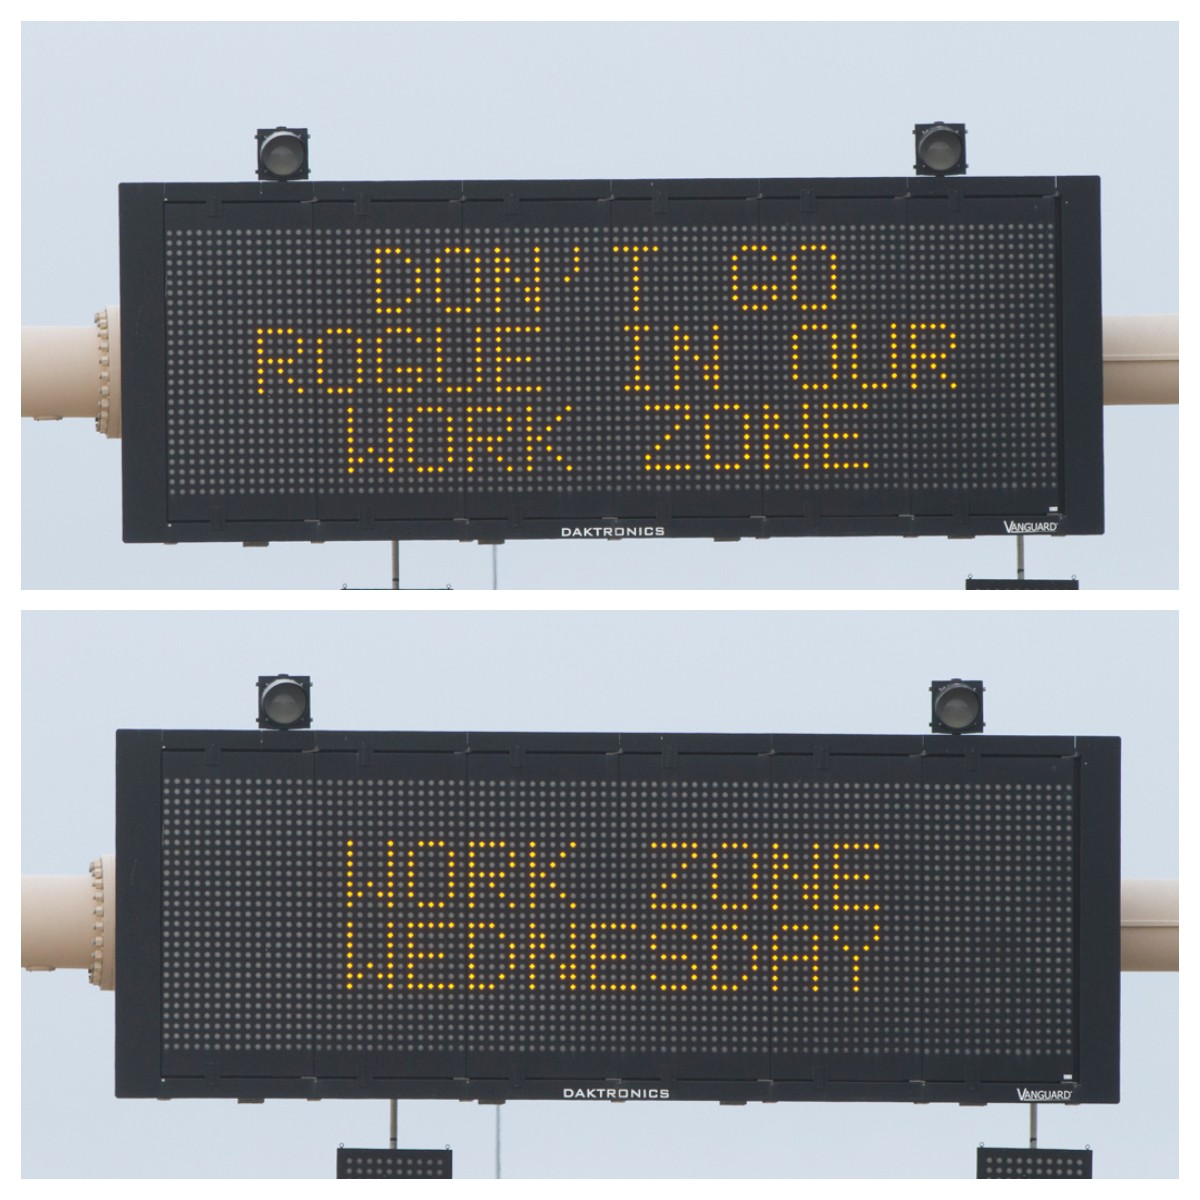 /content/dam/ok/en/odot/images/message-signs/12.14.16.jpg